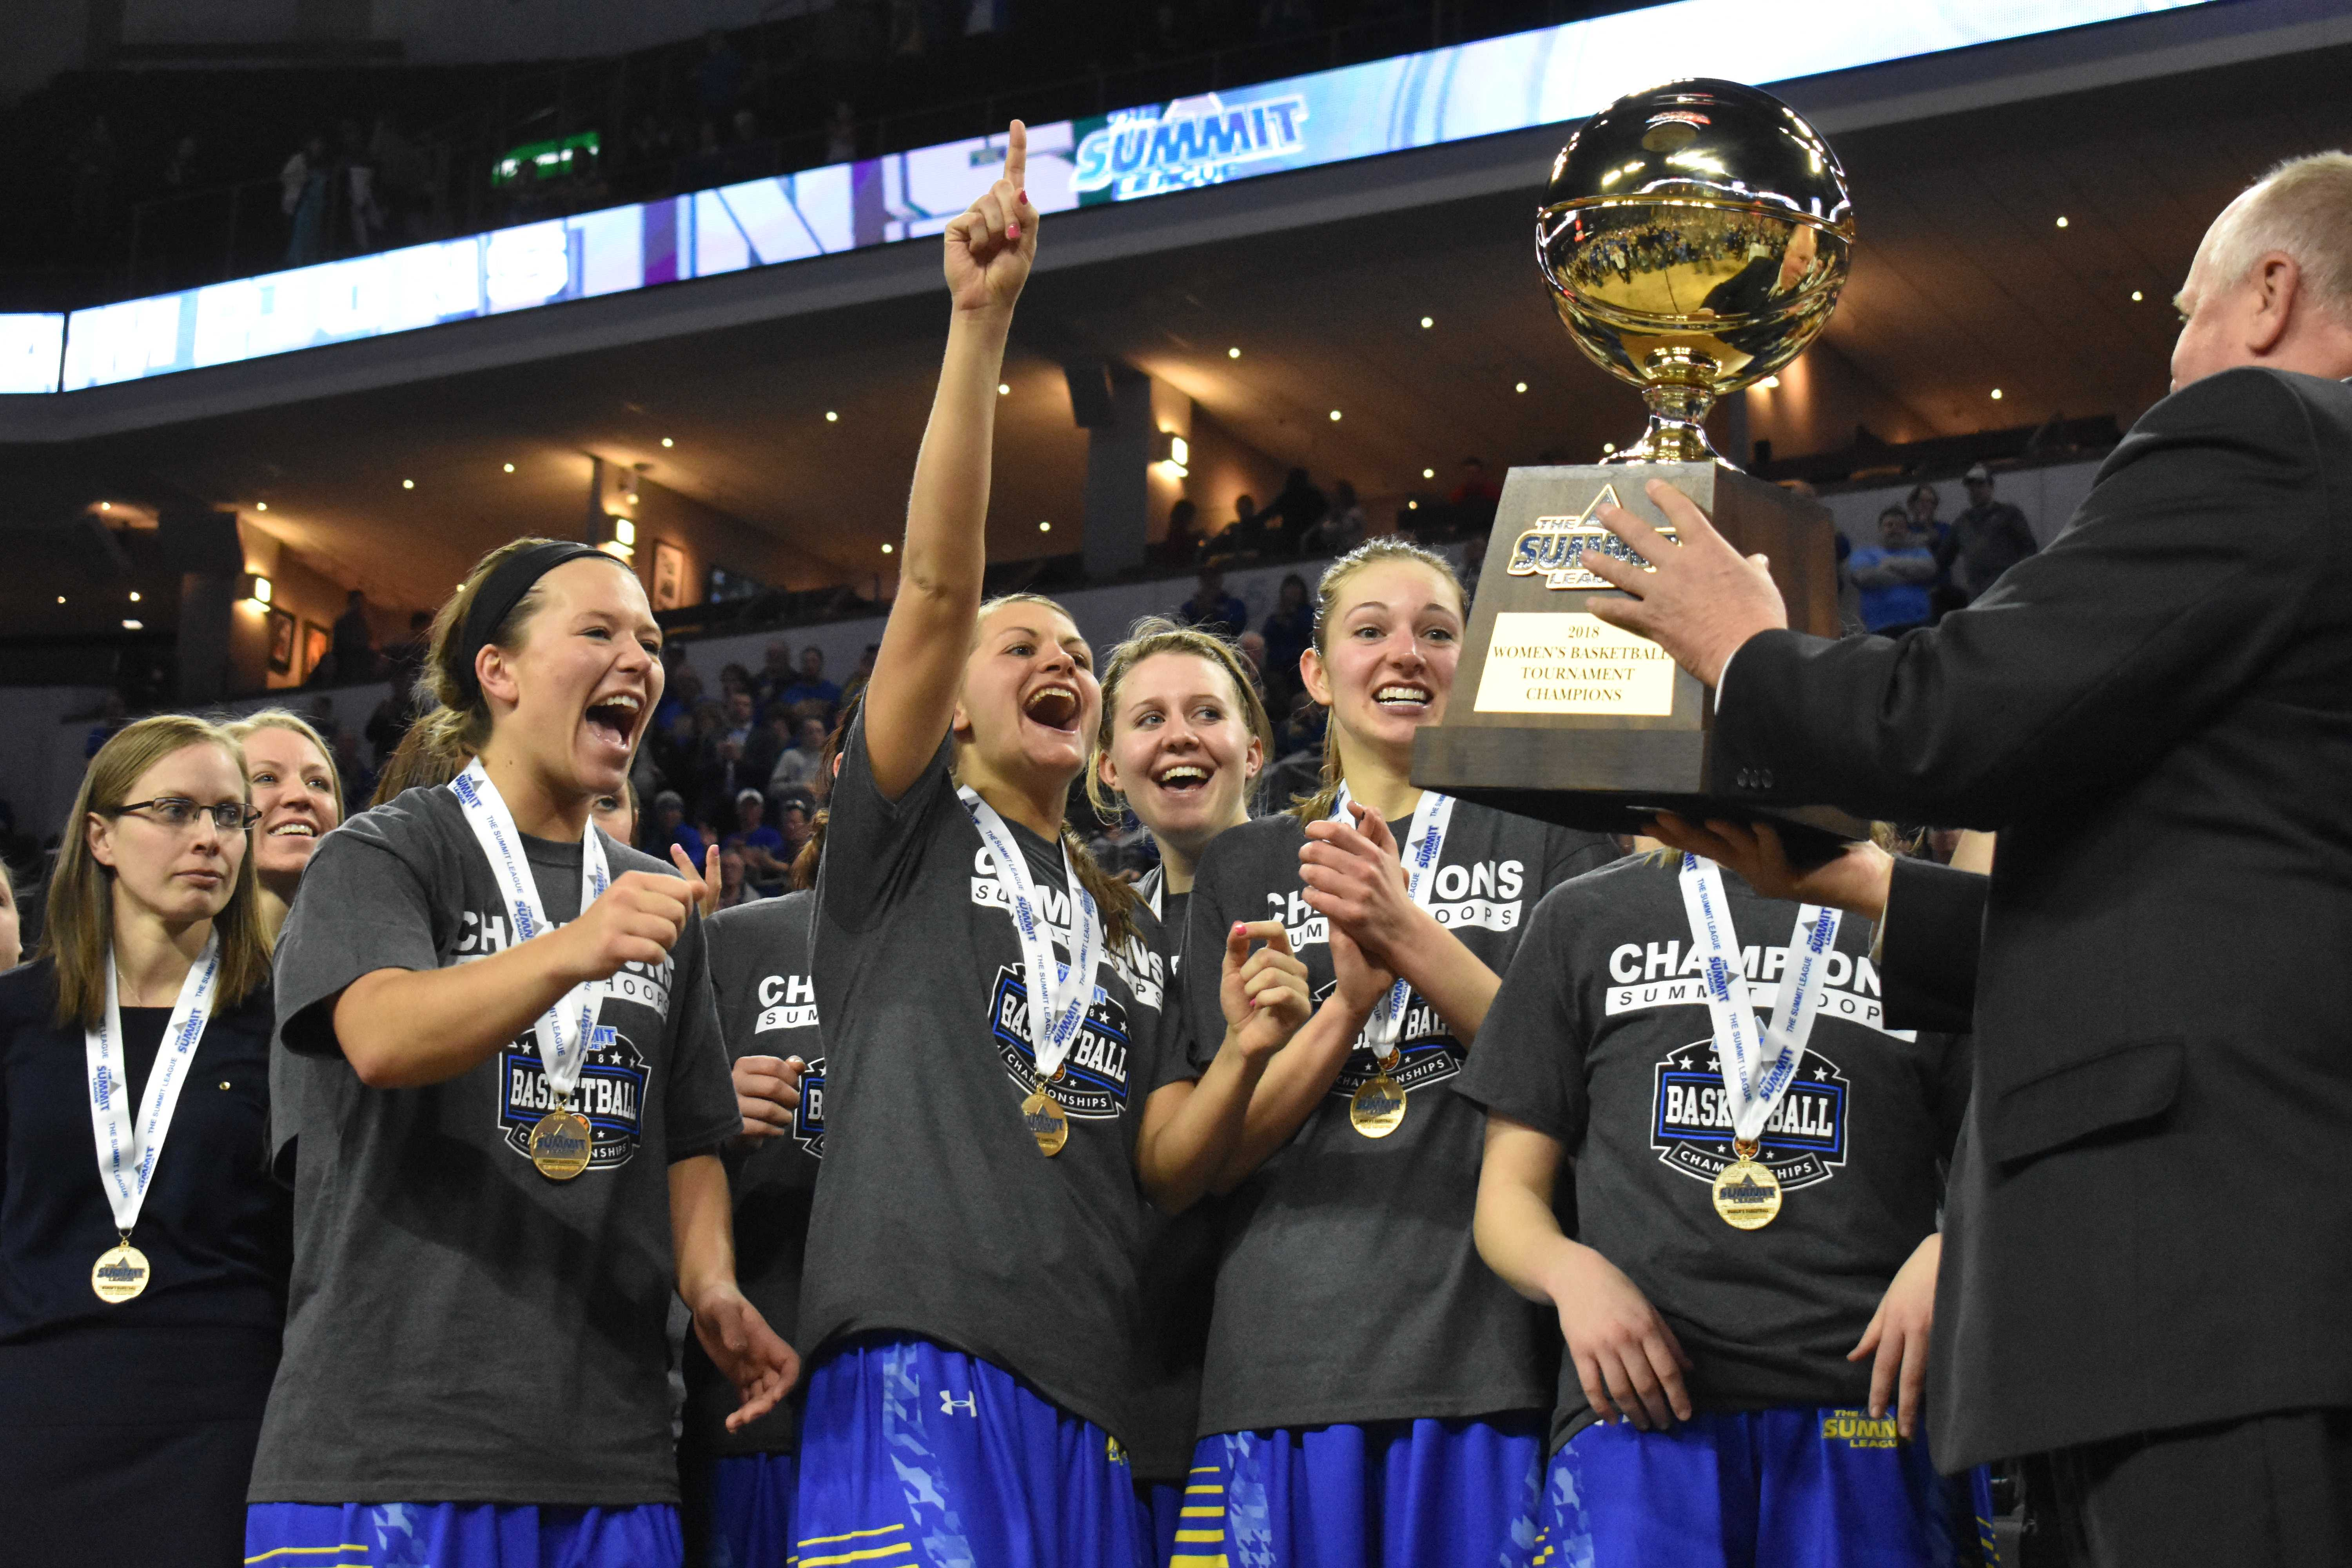 ABBY FULLENKAMP The Jacks are presented the Summit League Championship trophy March 6 at the Denny Sanford PREMIERE Center. The Jacks beat the Coyotes 65-60. SDSU faces Villanova in the first game of the NCAA Tournament at 6:30 p.m. March 16 in Notre Dame, Indiana.